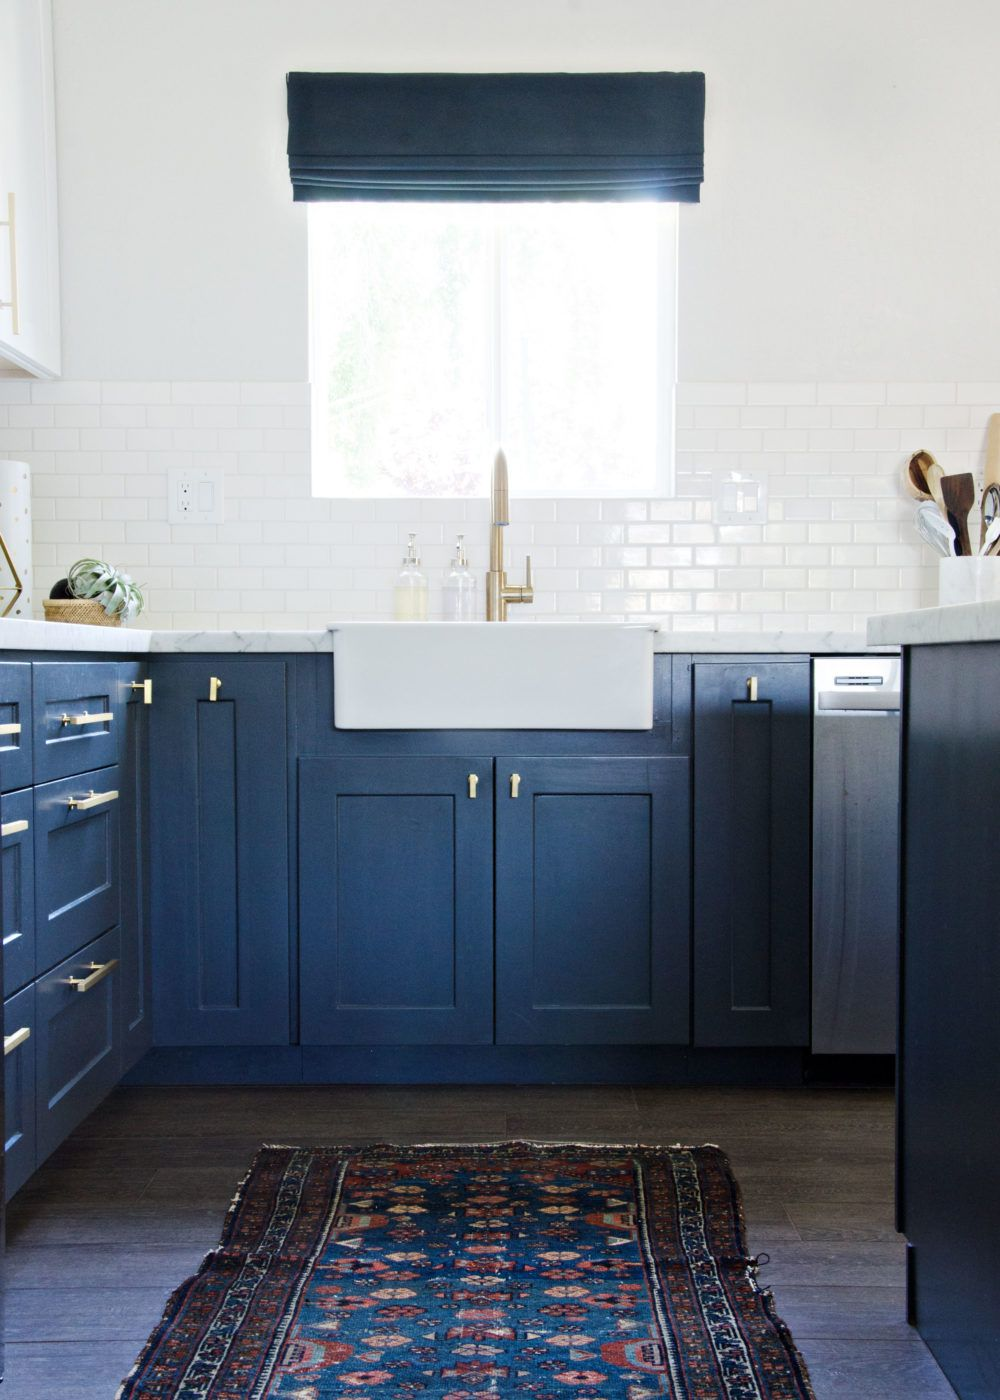 White and navy kitchen design with glossy white tiled backsplash ...